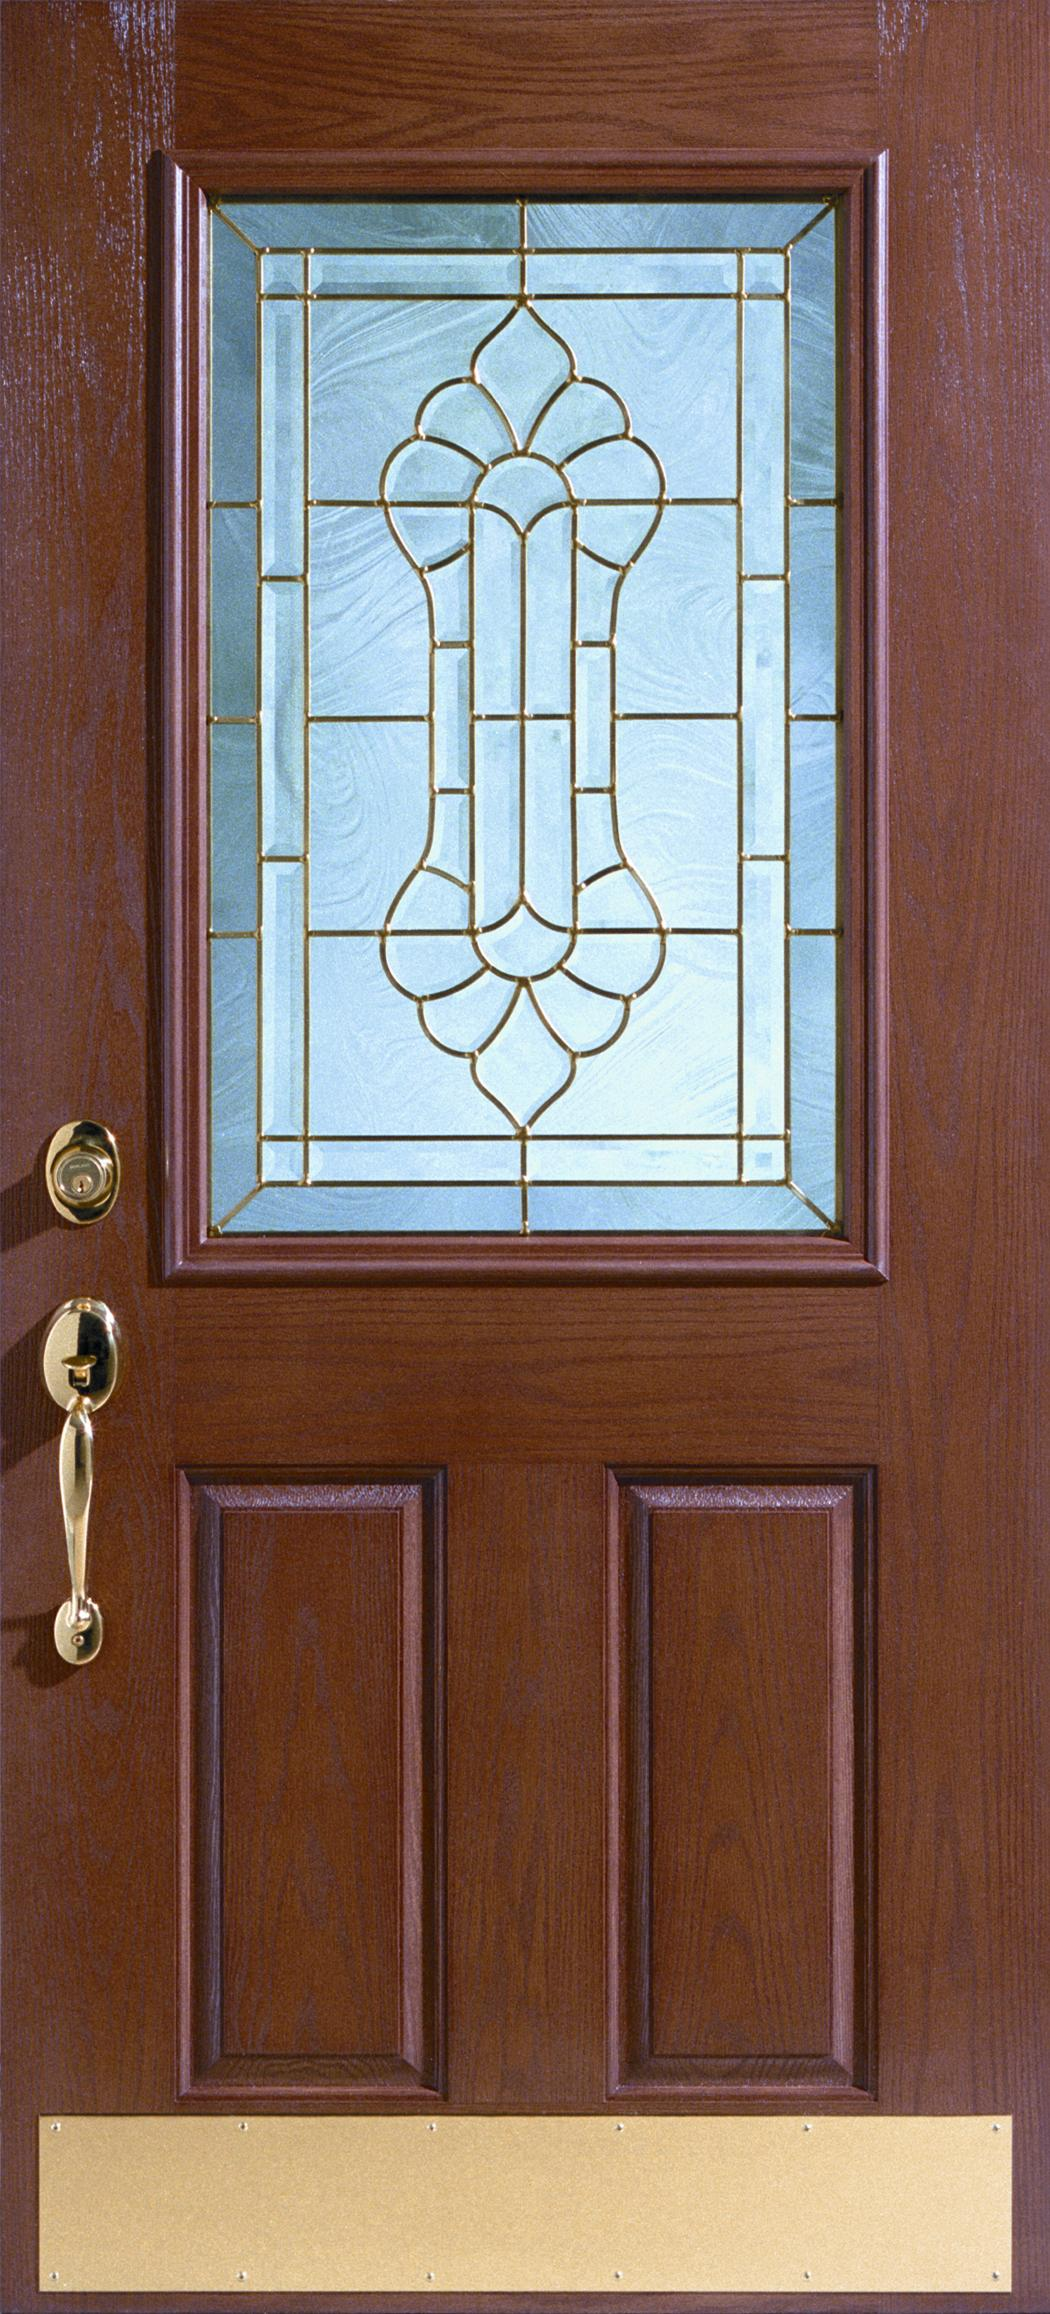 2314 #2E7C9D Fiberglass Exterior Front Doors Colonial wallpaper Fiberglass Exterior Doors With Glass 39751050